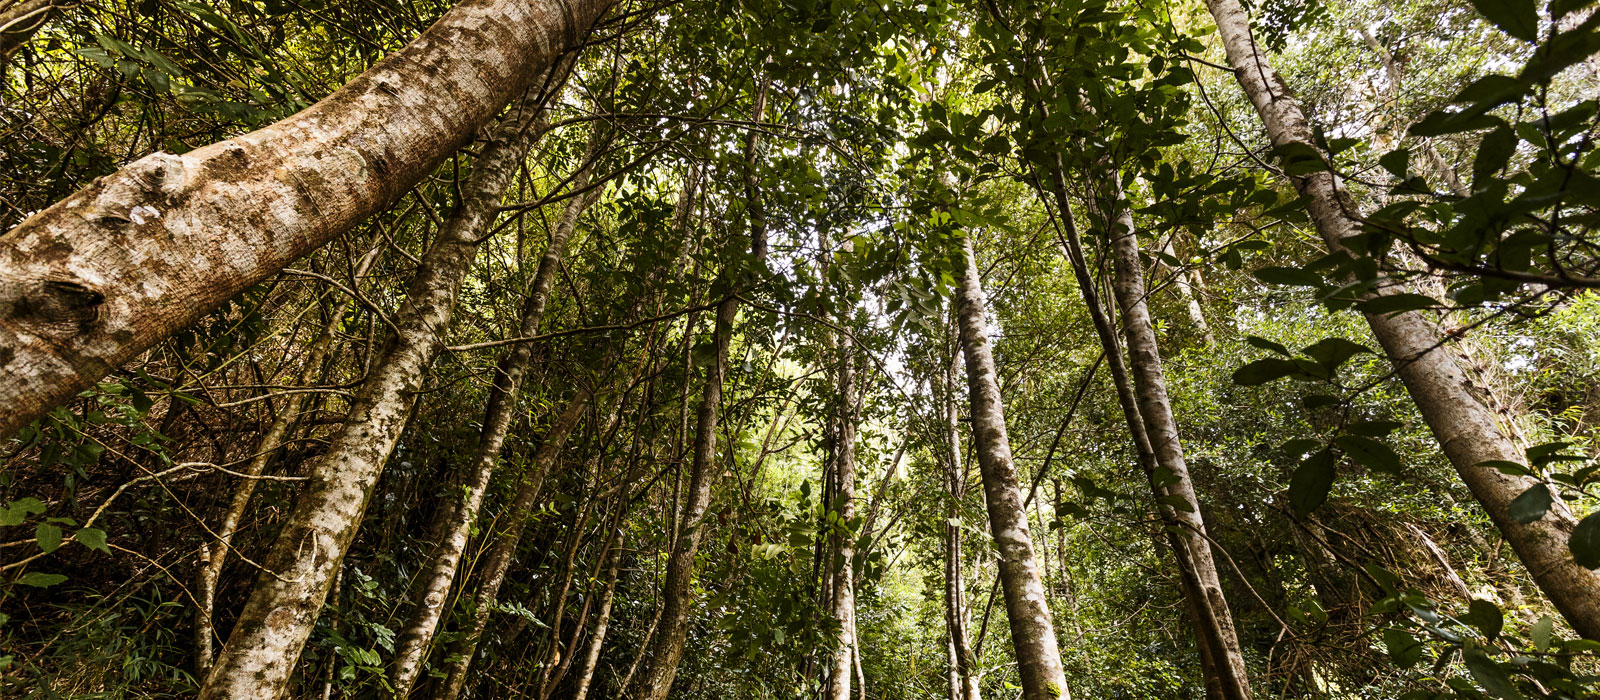 The Strengthening Synergies Between Climate Finance, Carbon Pricing and Natural Capital